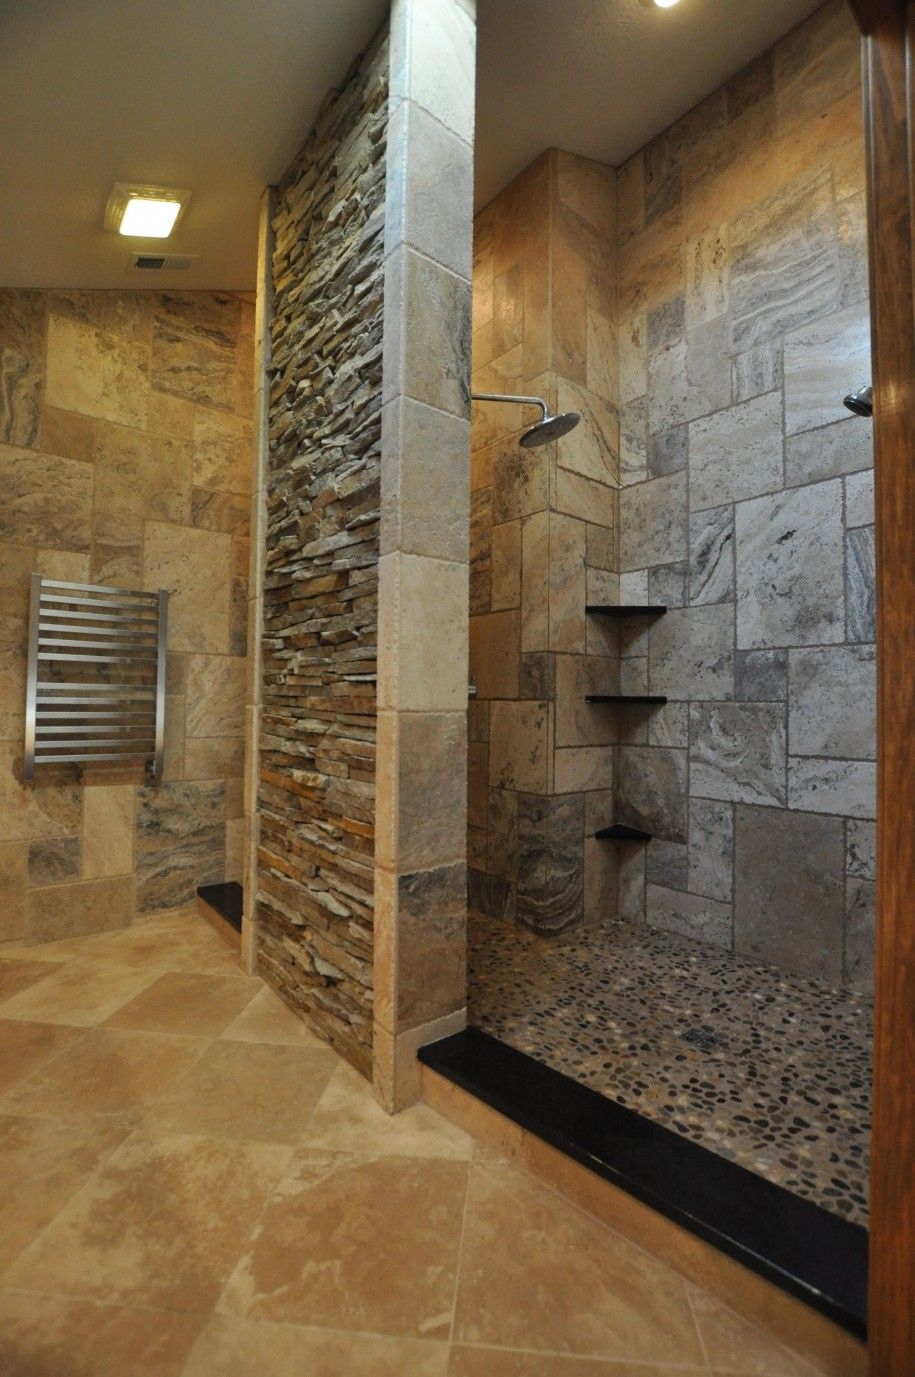 Stone Bathroom Designs Cool Sculptural Rough Stone Bathroom Design Cool Sculptural